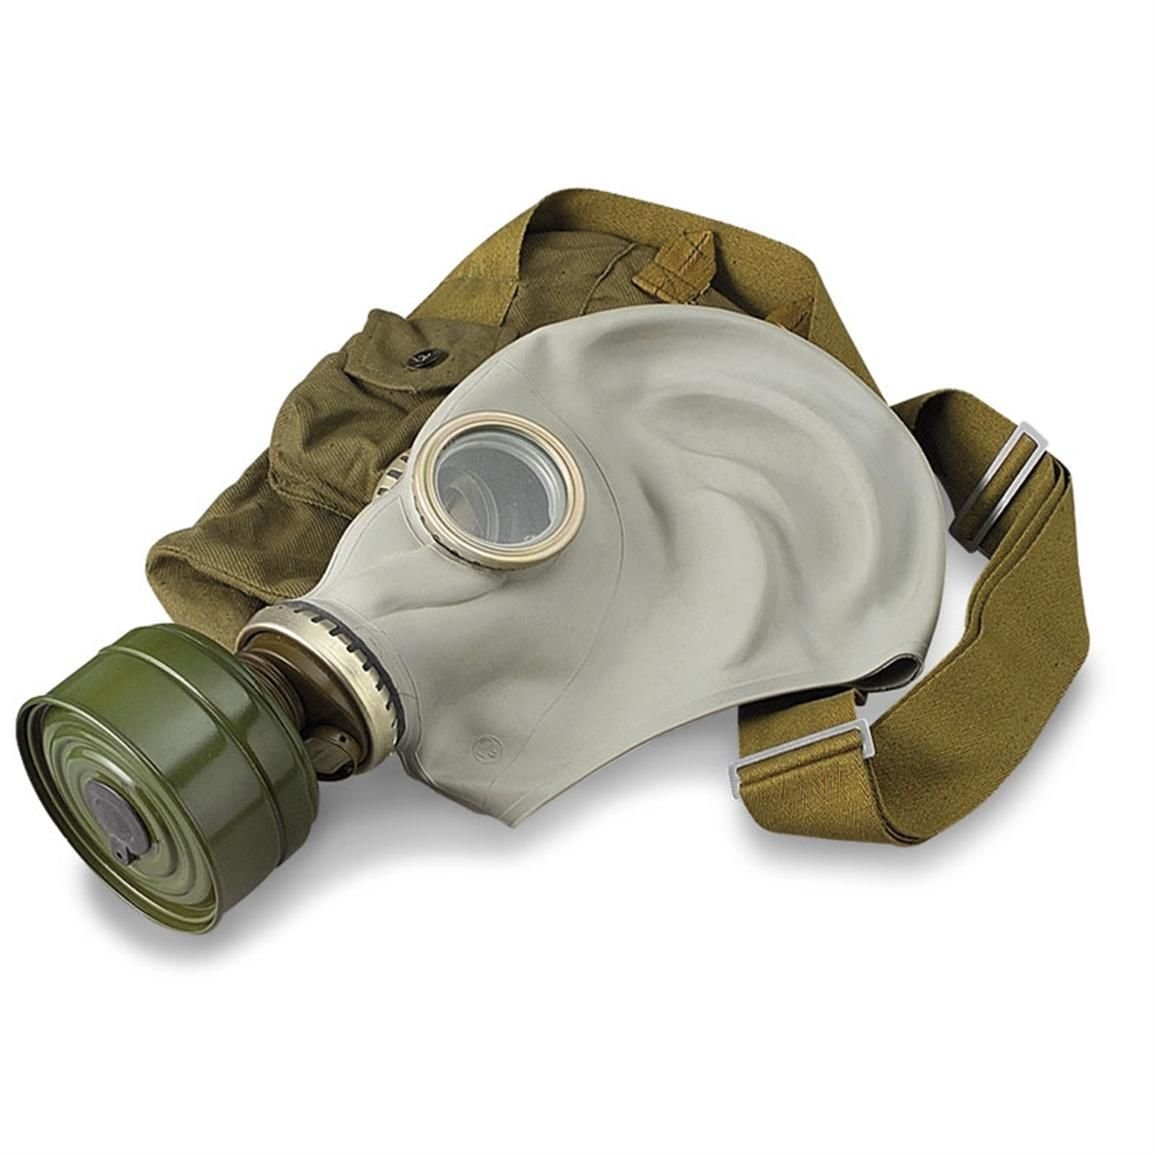 GP-5 Original Soviet Civilian Protective Gas Mask (activated Charcoal filter and bag included) (Medium, white) - - Amazon.com